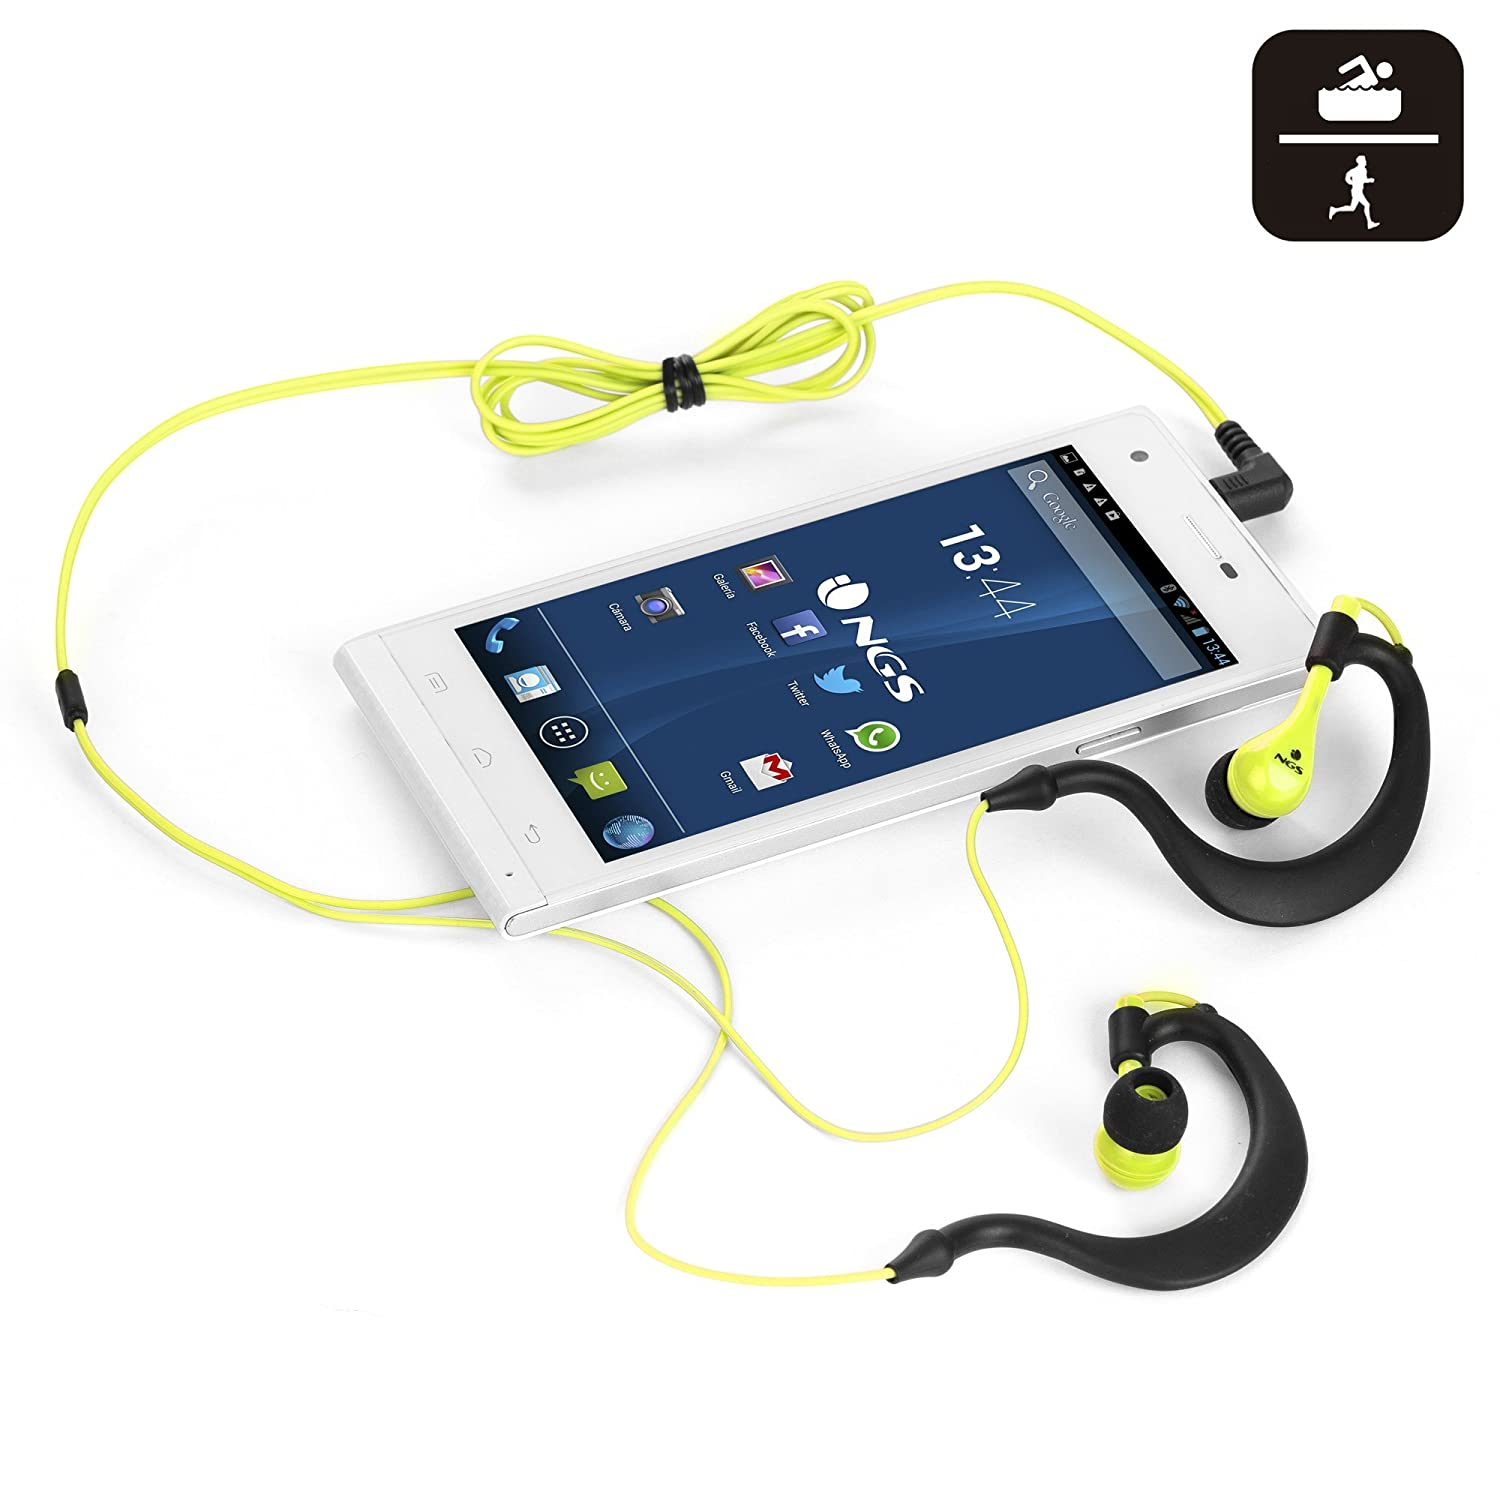 NGS Triton - Auriculares in-Ear Deportivos, Color Negro y Amarillo: Amazon.es: Electrónica